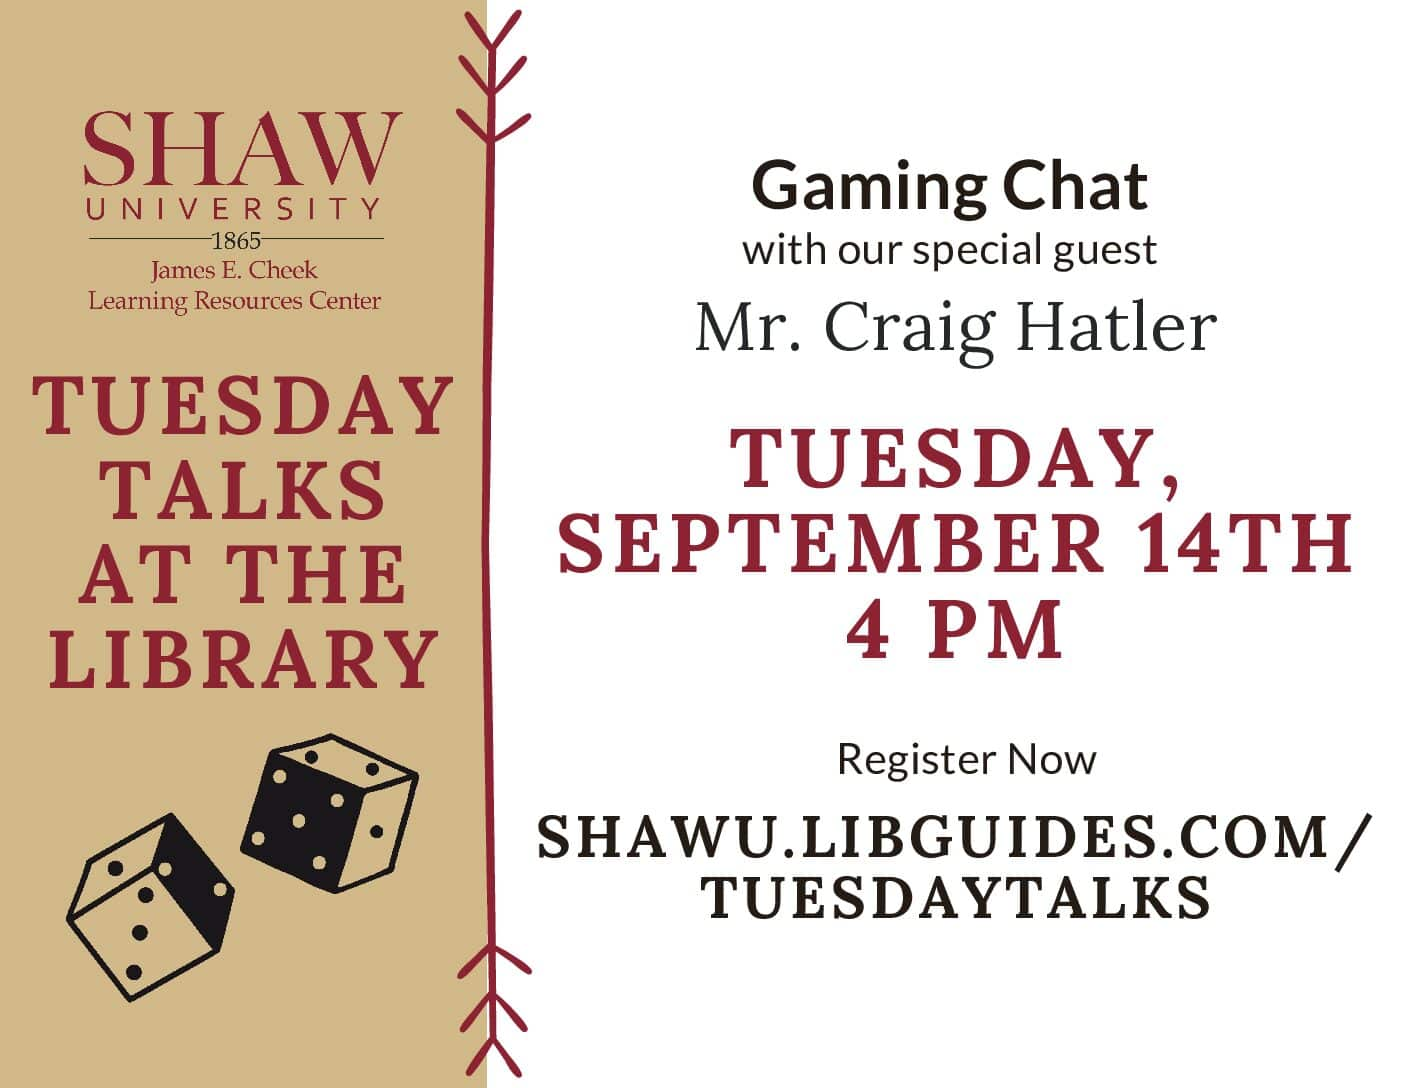 Tuesday Talks at the Library: Gaming Chat with Craig Hatler